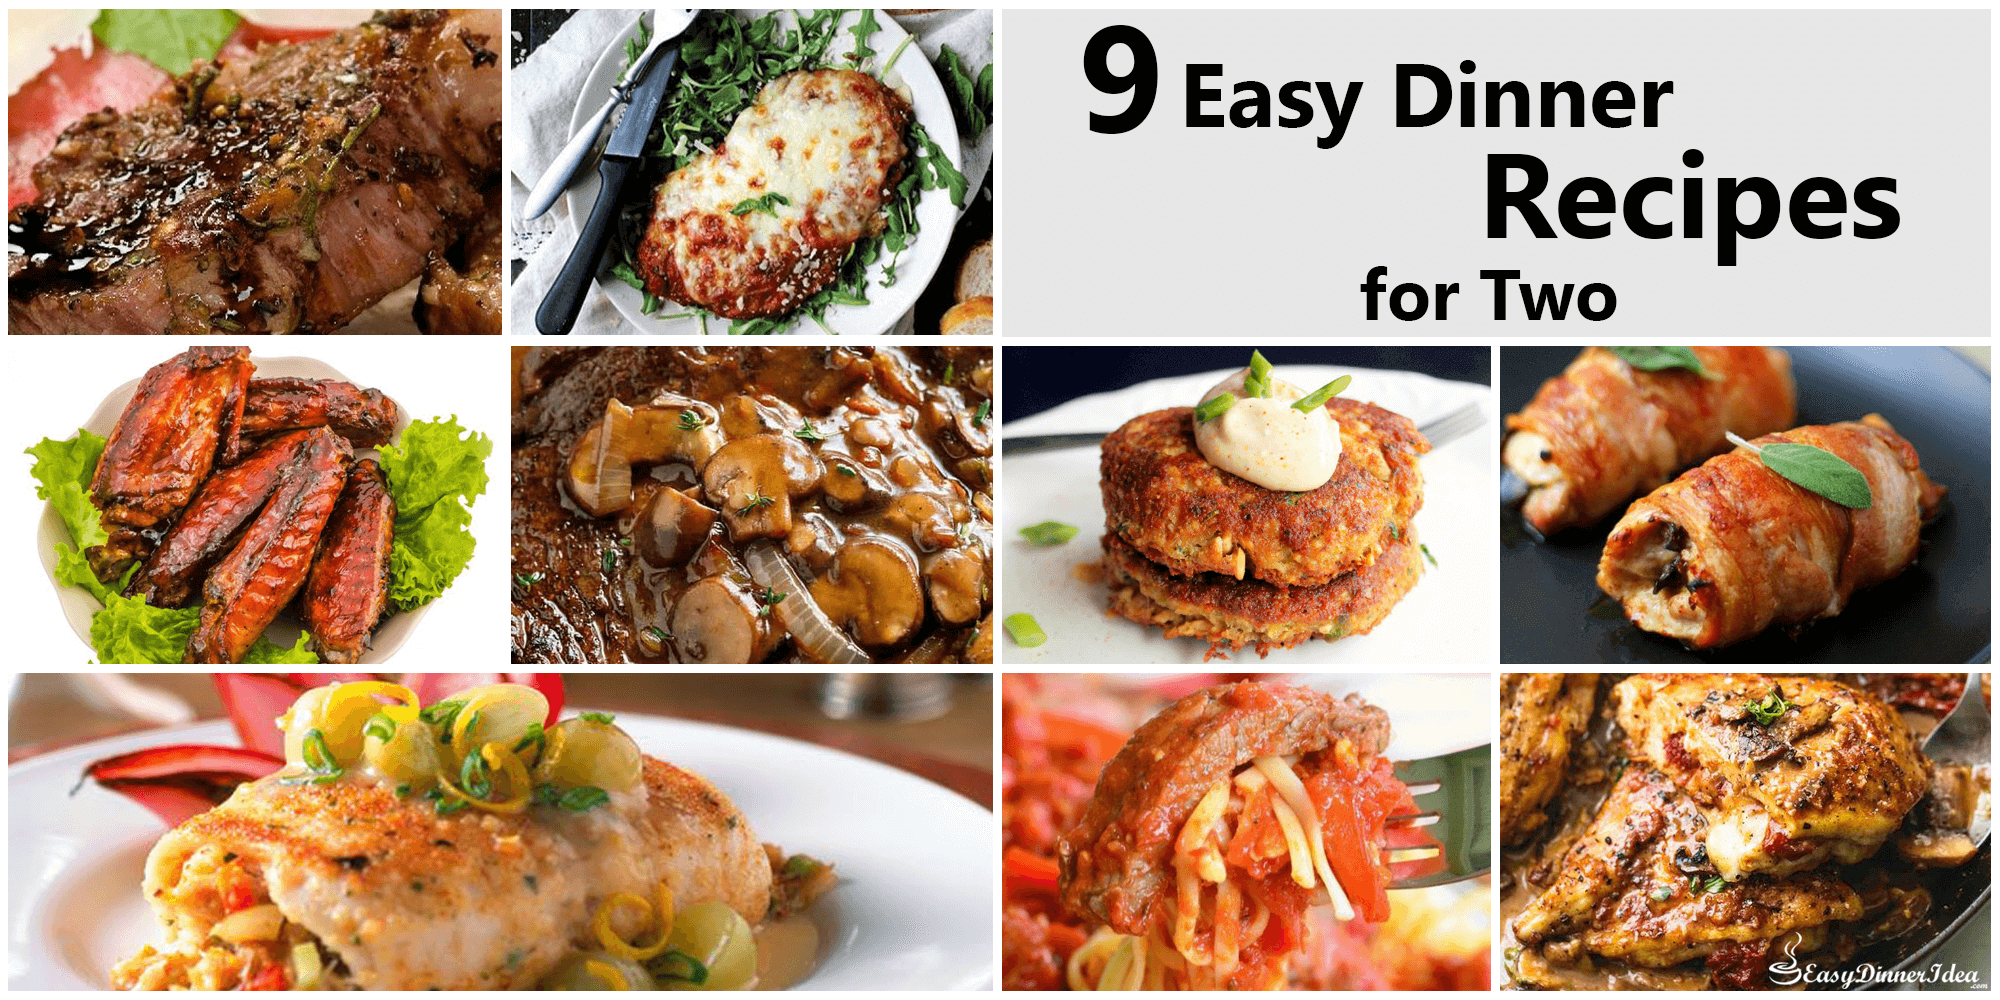 9 easy dinner recipes for two